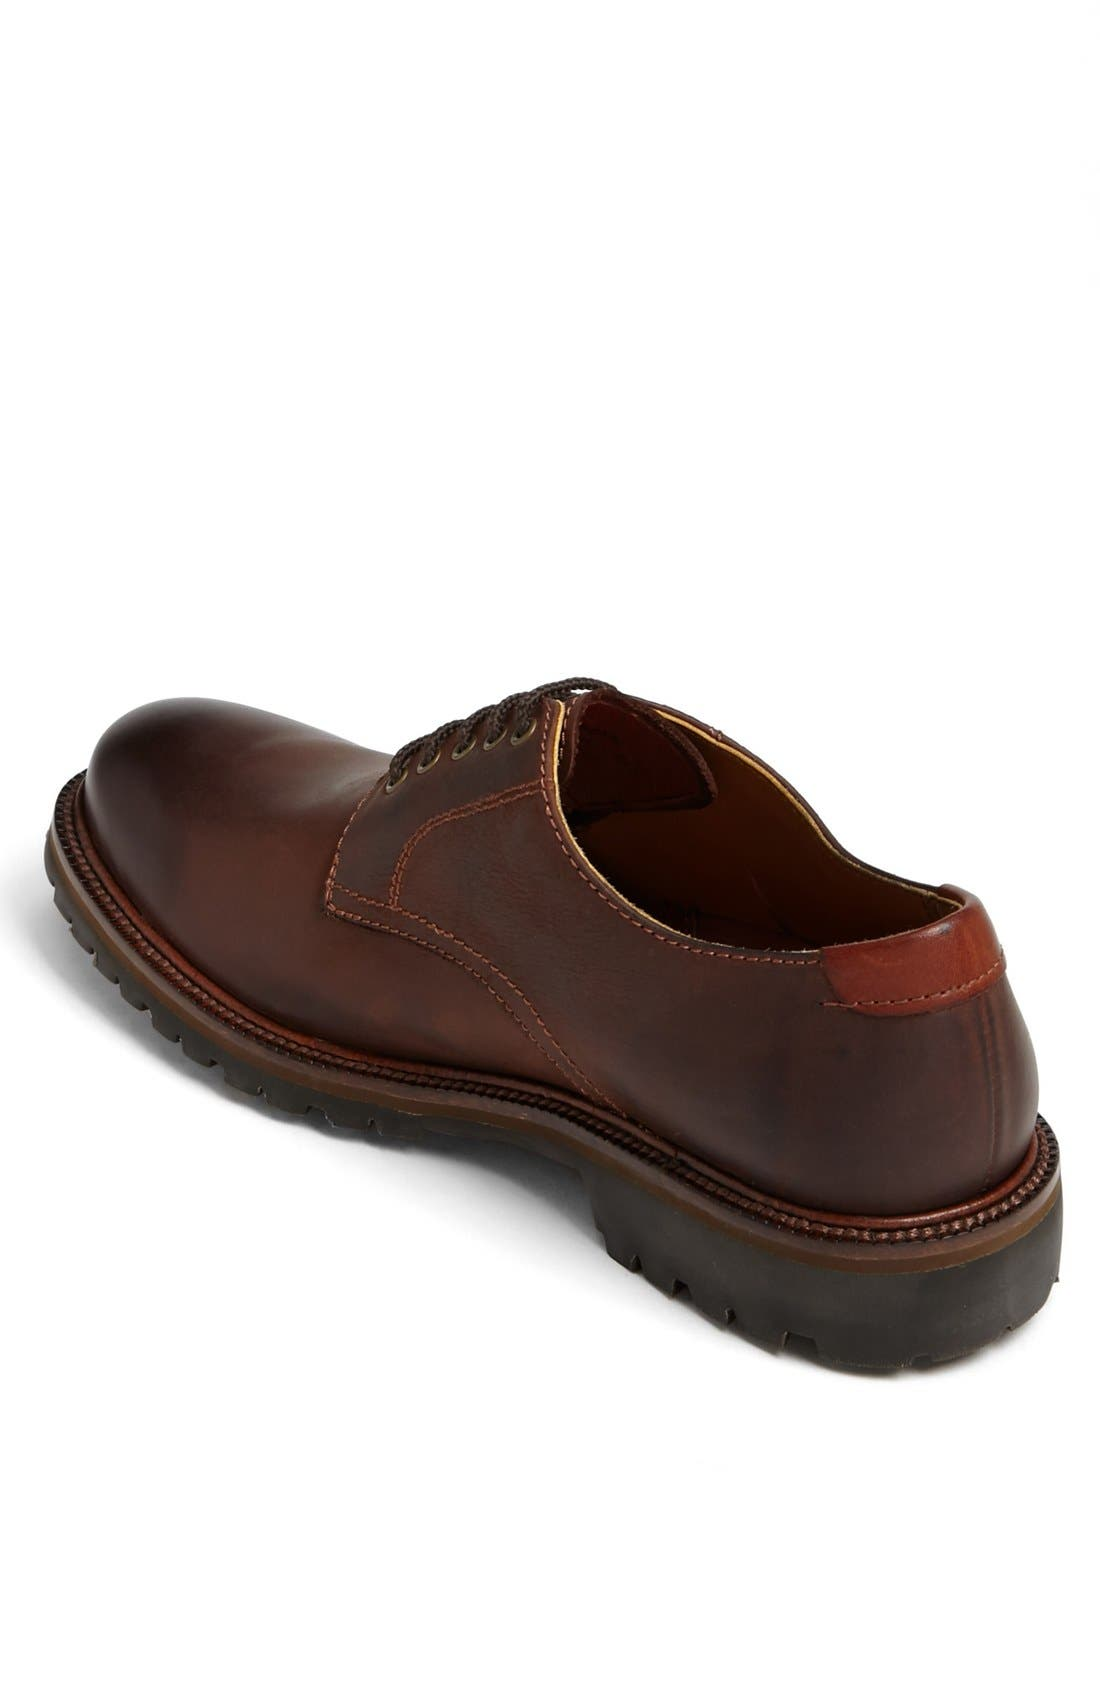 Alternate Image 2  - Trask 'Gallatin' Plain Toe Derby